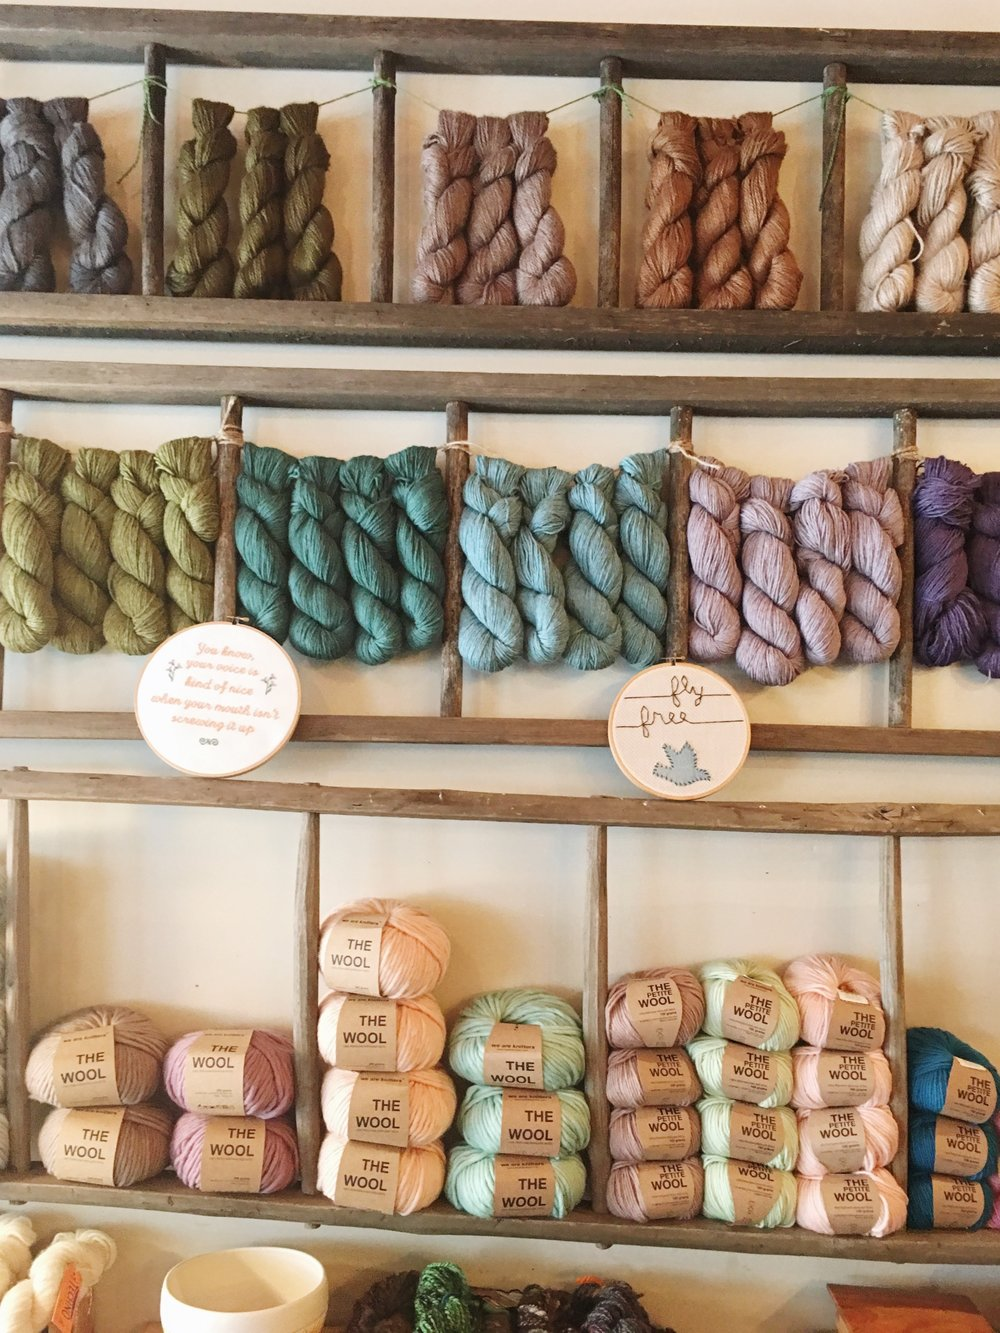 Little Button Craft and Press   has plethora of yarn, prints, illustrated cards and wide variety of crafty things from local makers across the city.